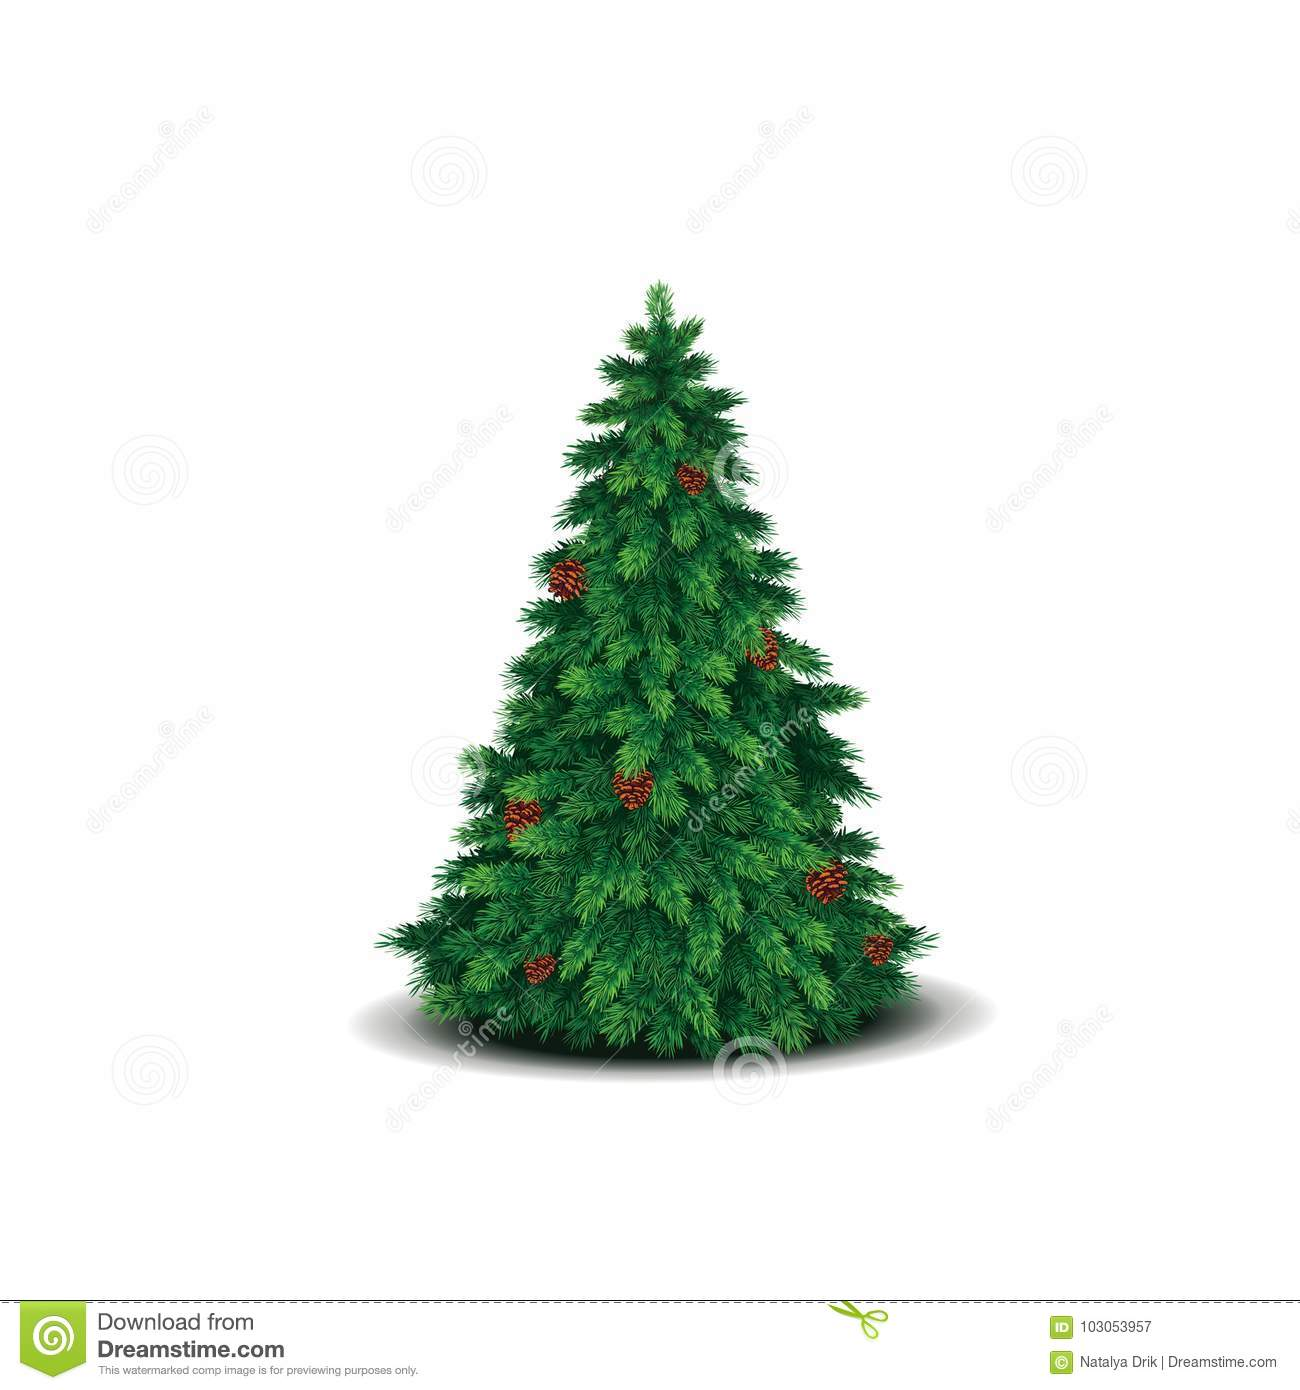 How To Draw A Realistic Christmas Tree.How Do You Draw A Realistic Christmas Tree Thecannonball Org